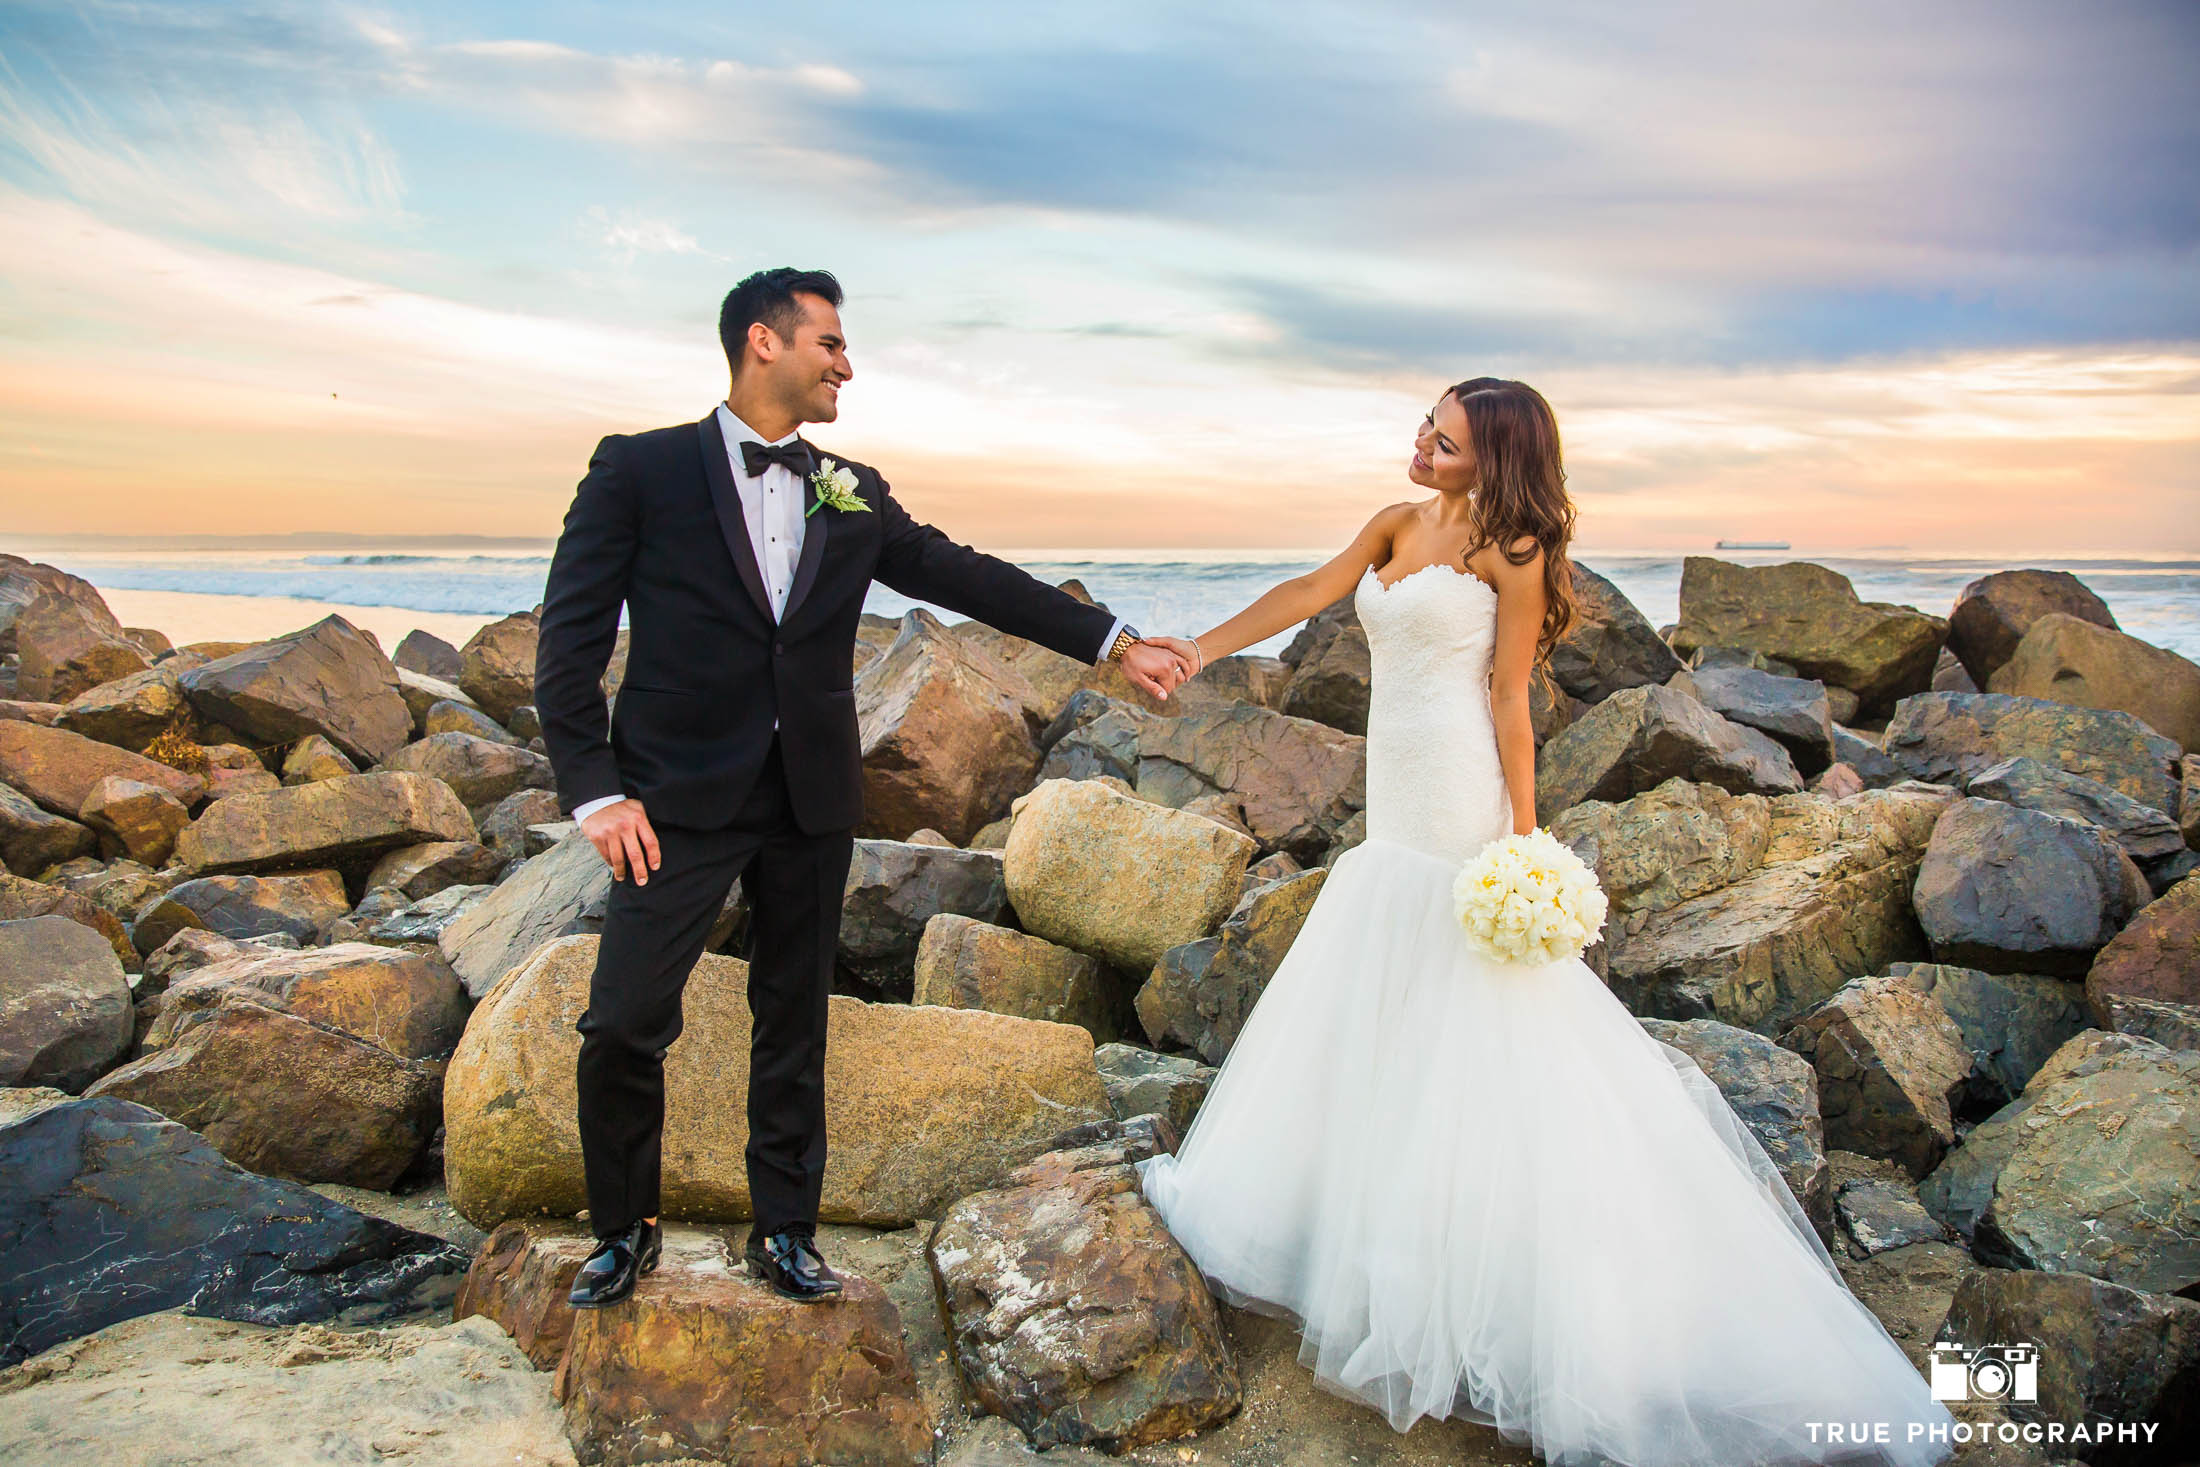 Bride and Groom hold hands on rocks at beach